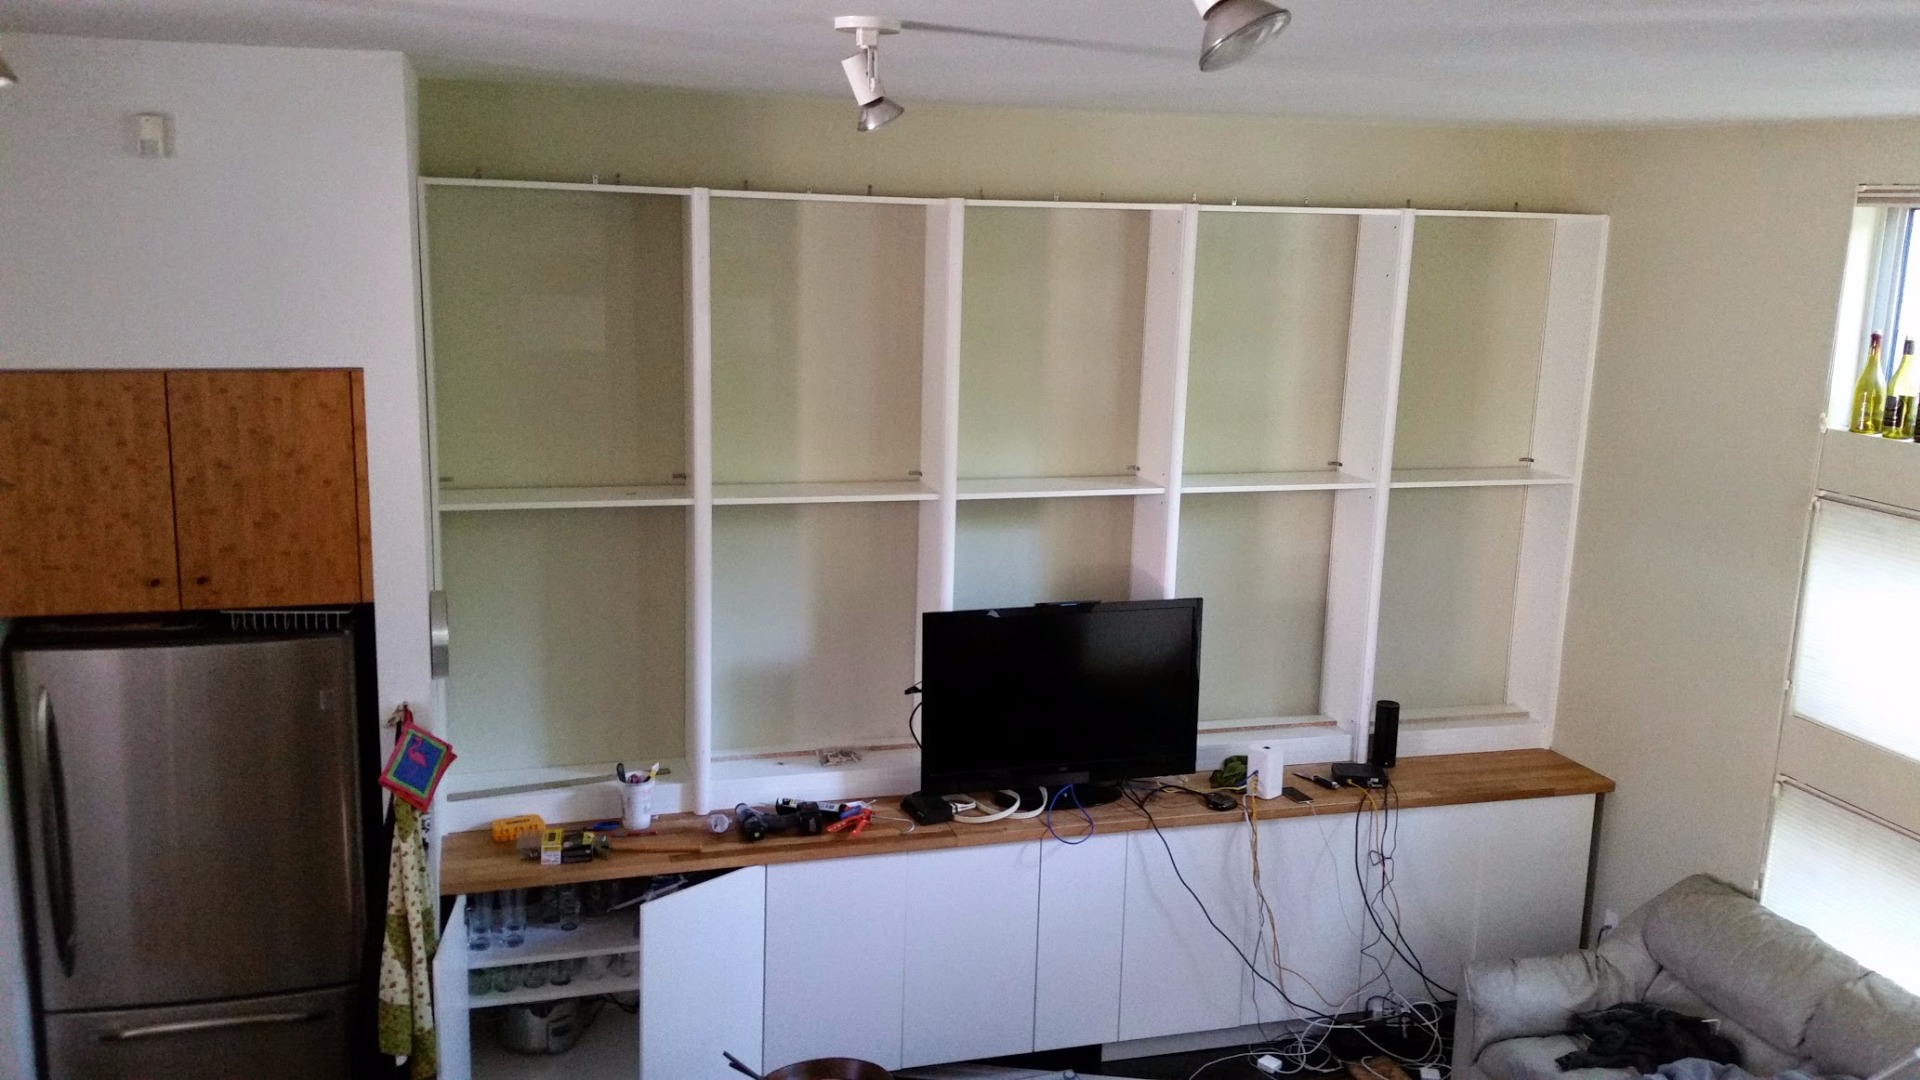 Picture of Install the Bookshelves